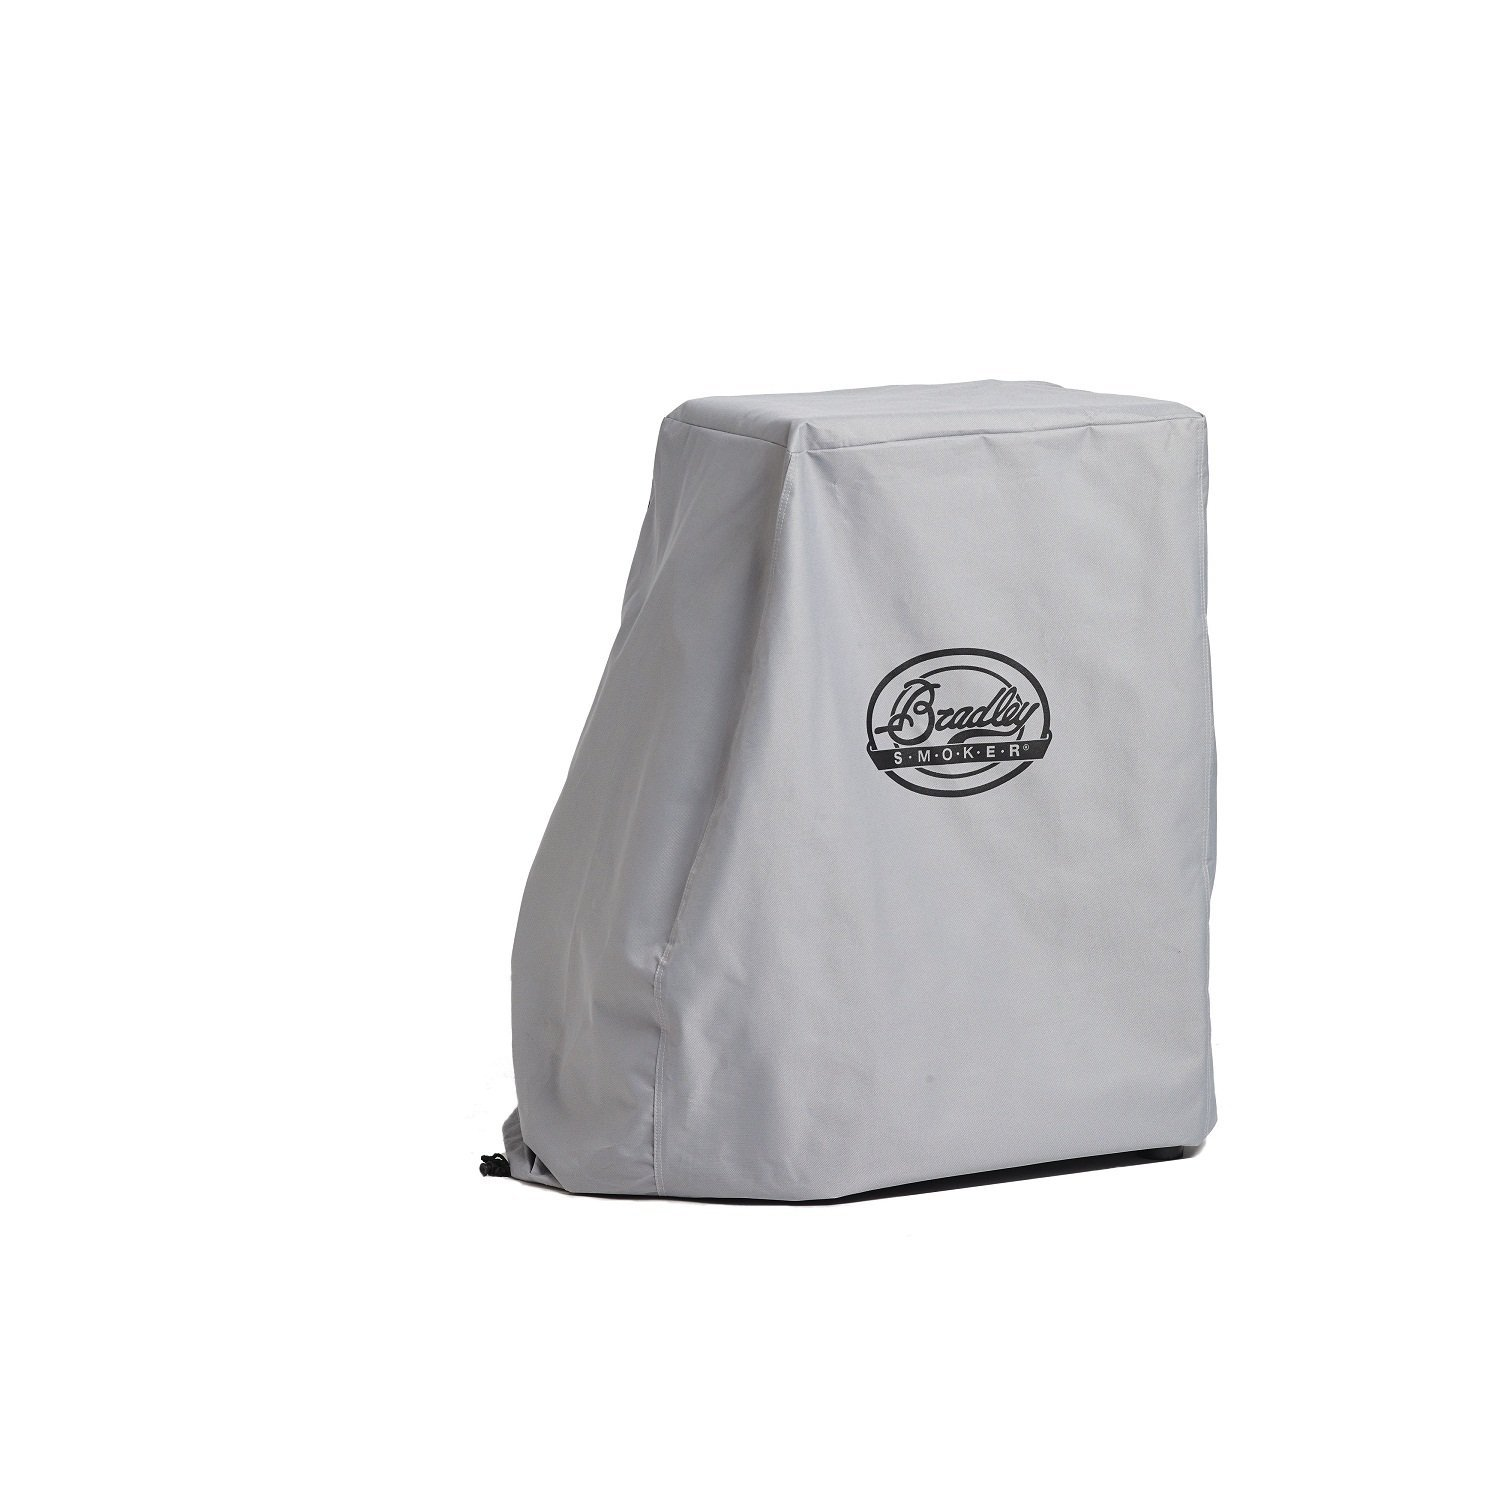 Bradley All Weather Cover 6 Rack Bradley Smoker 990261